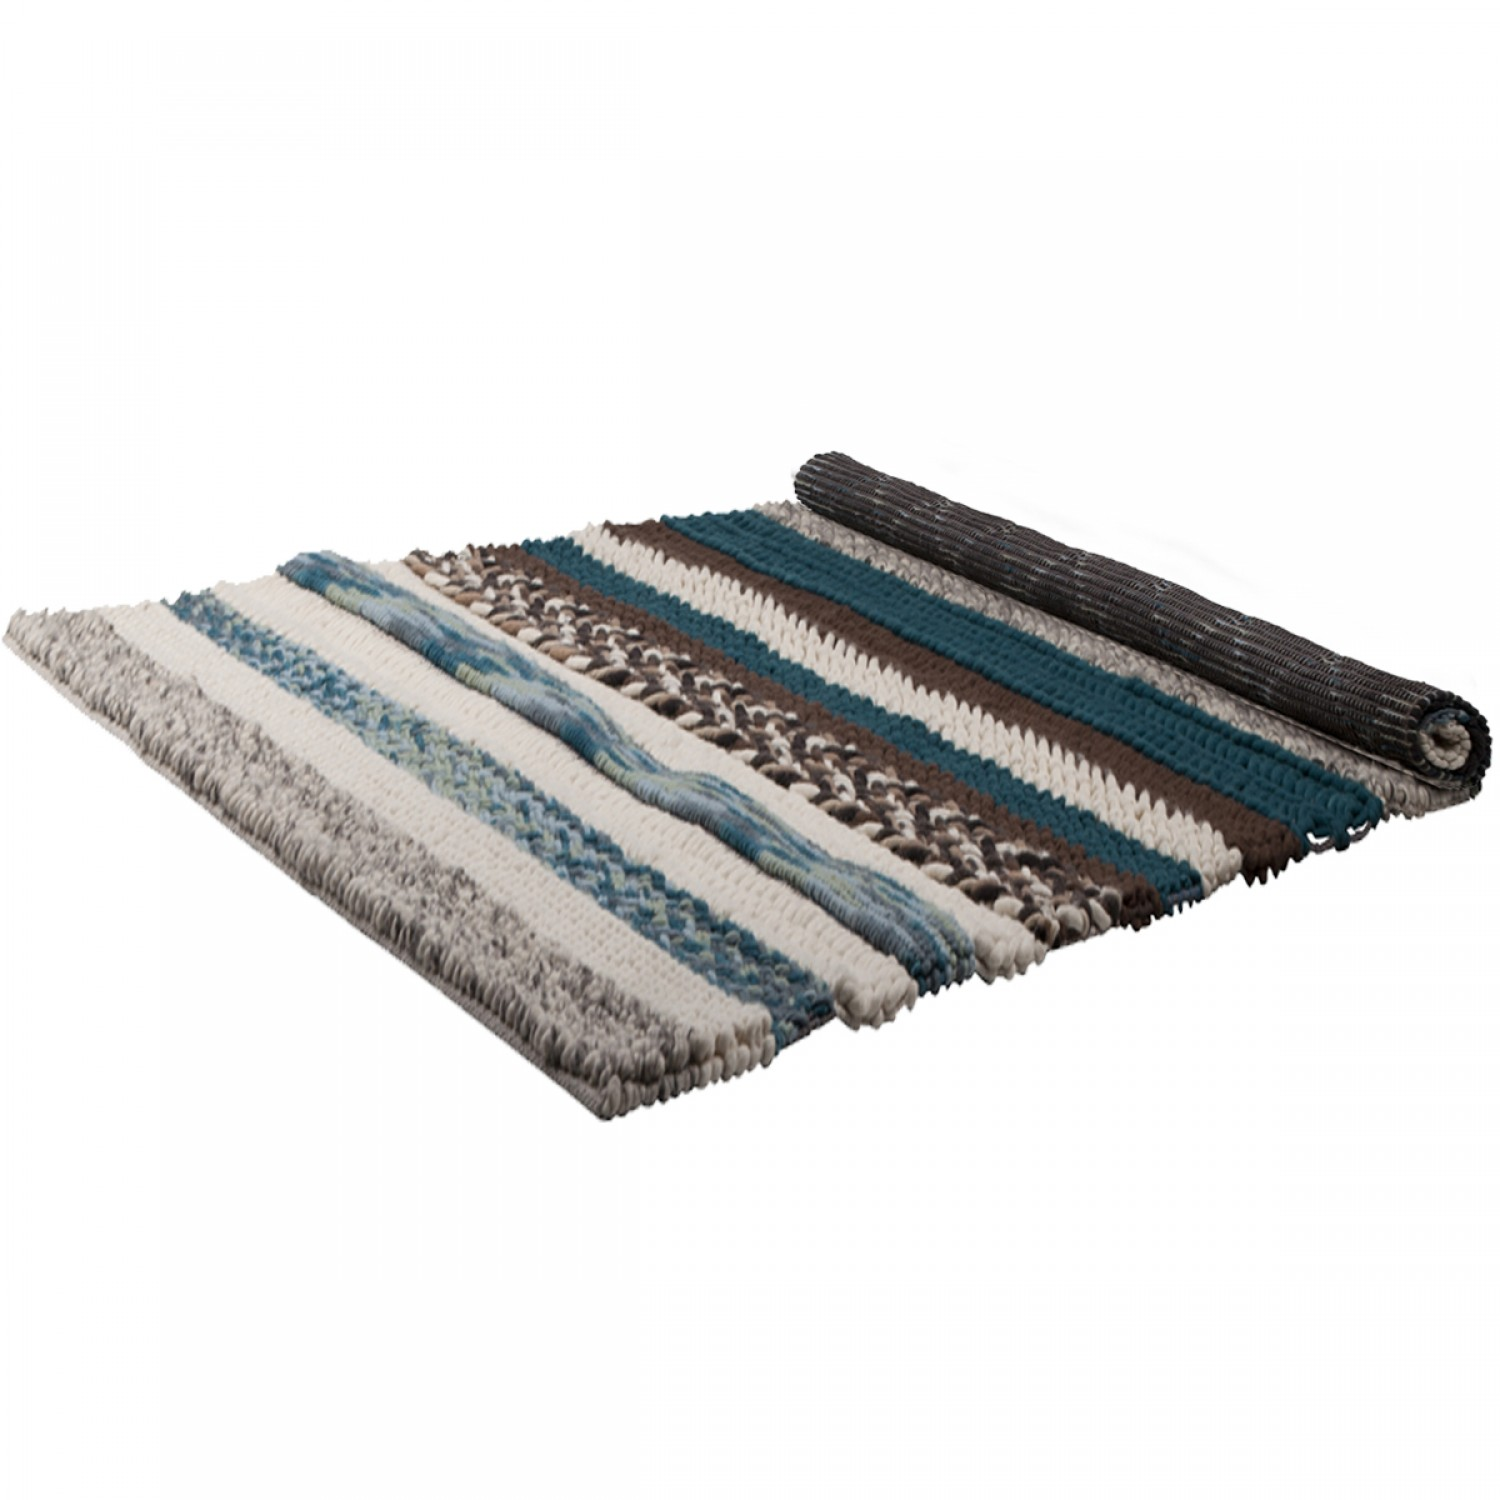 tapis andrea marron et bleu 200x300 cm koya design. Black Bedroom Furniture Sets. Home Design Ideas